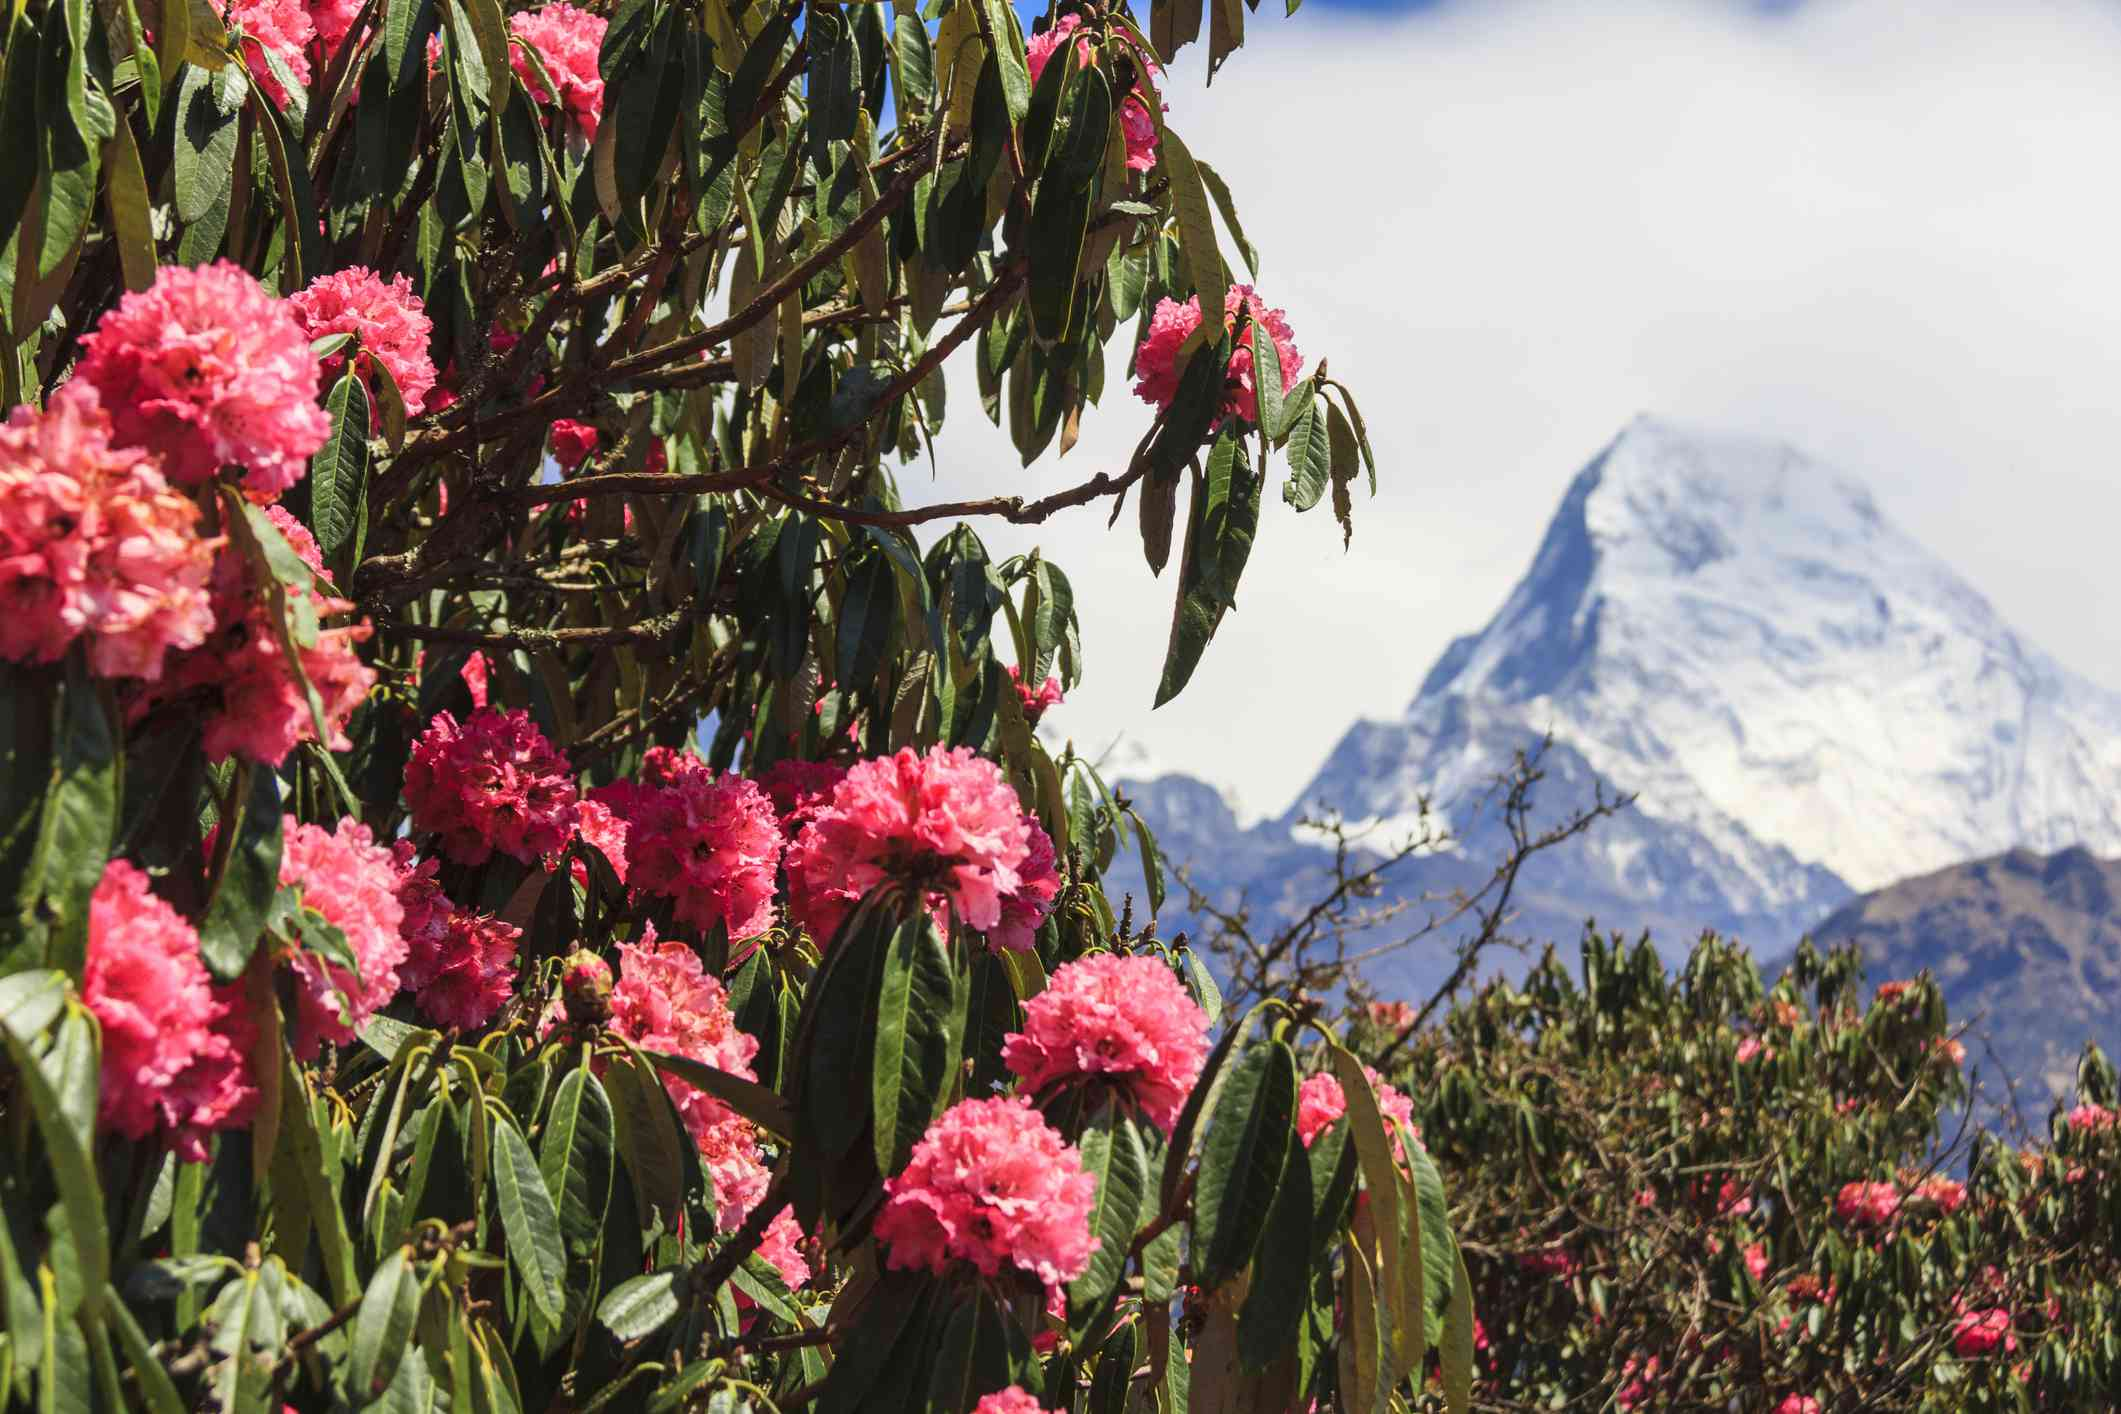 Pink Rhododendron, flower of Nepal, and Annapurna mountain view in background.